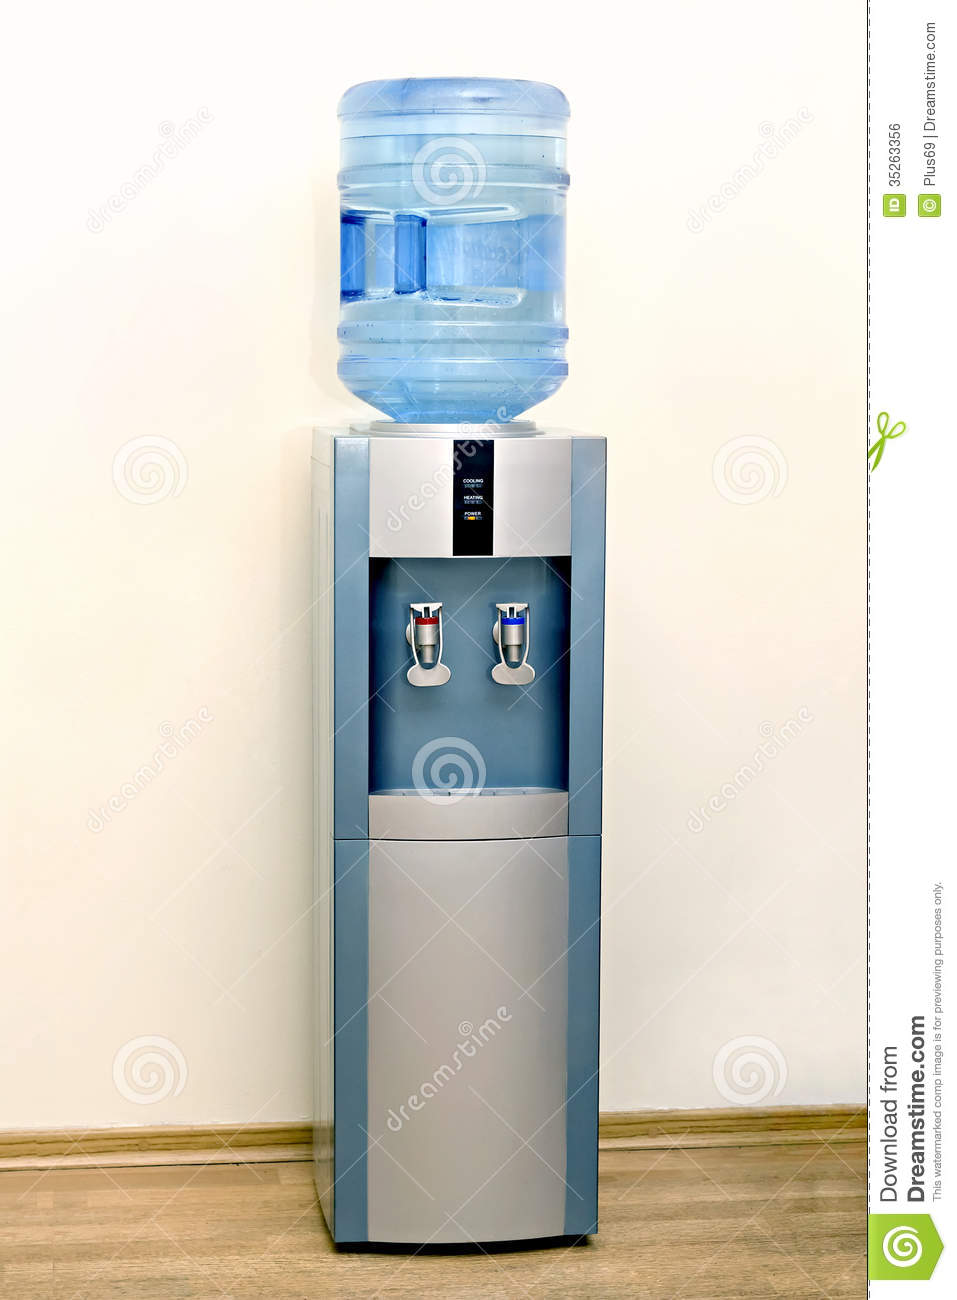 Electric water cooler stock photo. Image of freshness - 35263356